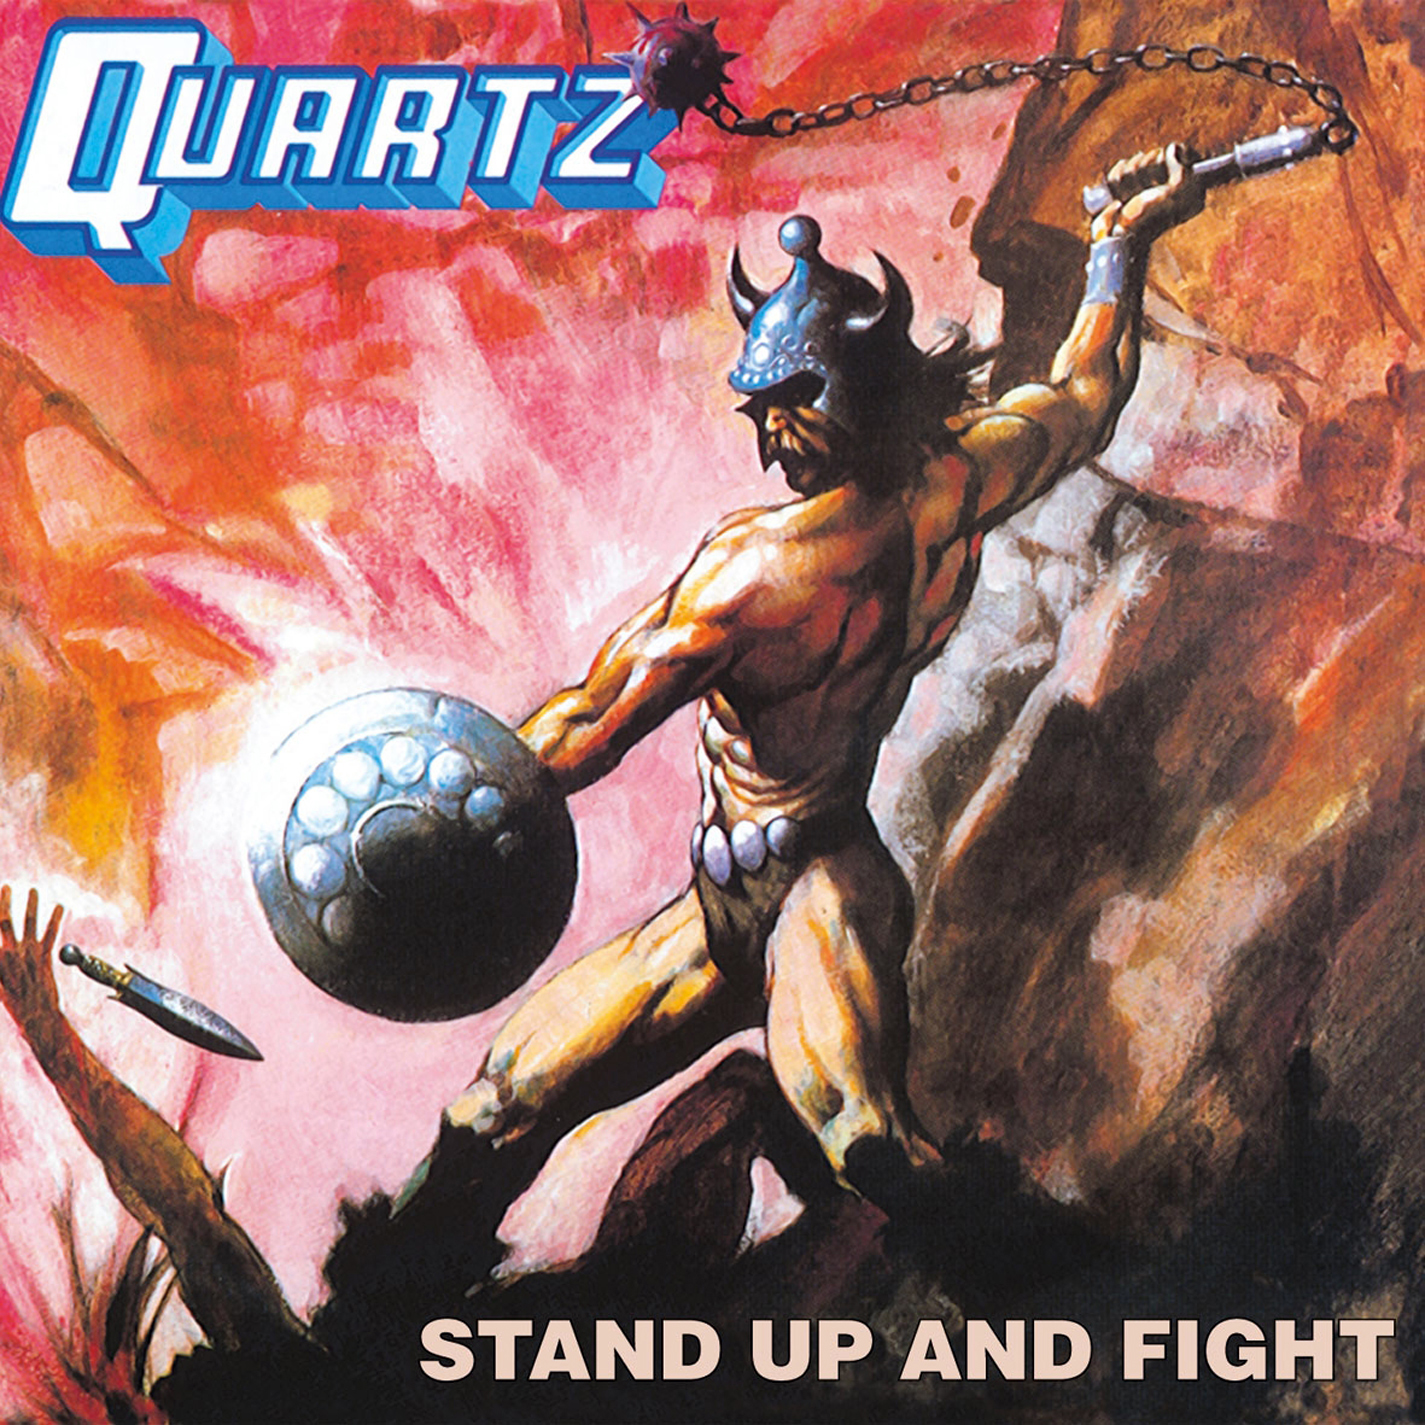 Qu'écoutez-vous en ce moment ? - Page 37 Quartz_stand_up_and_fight